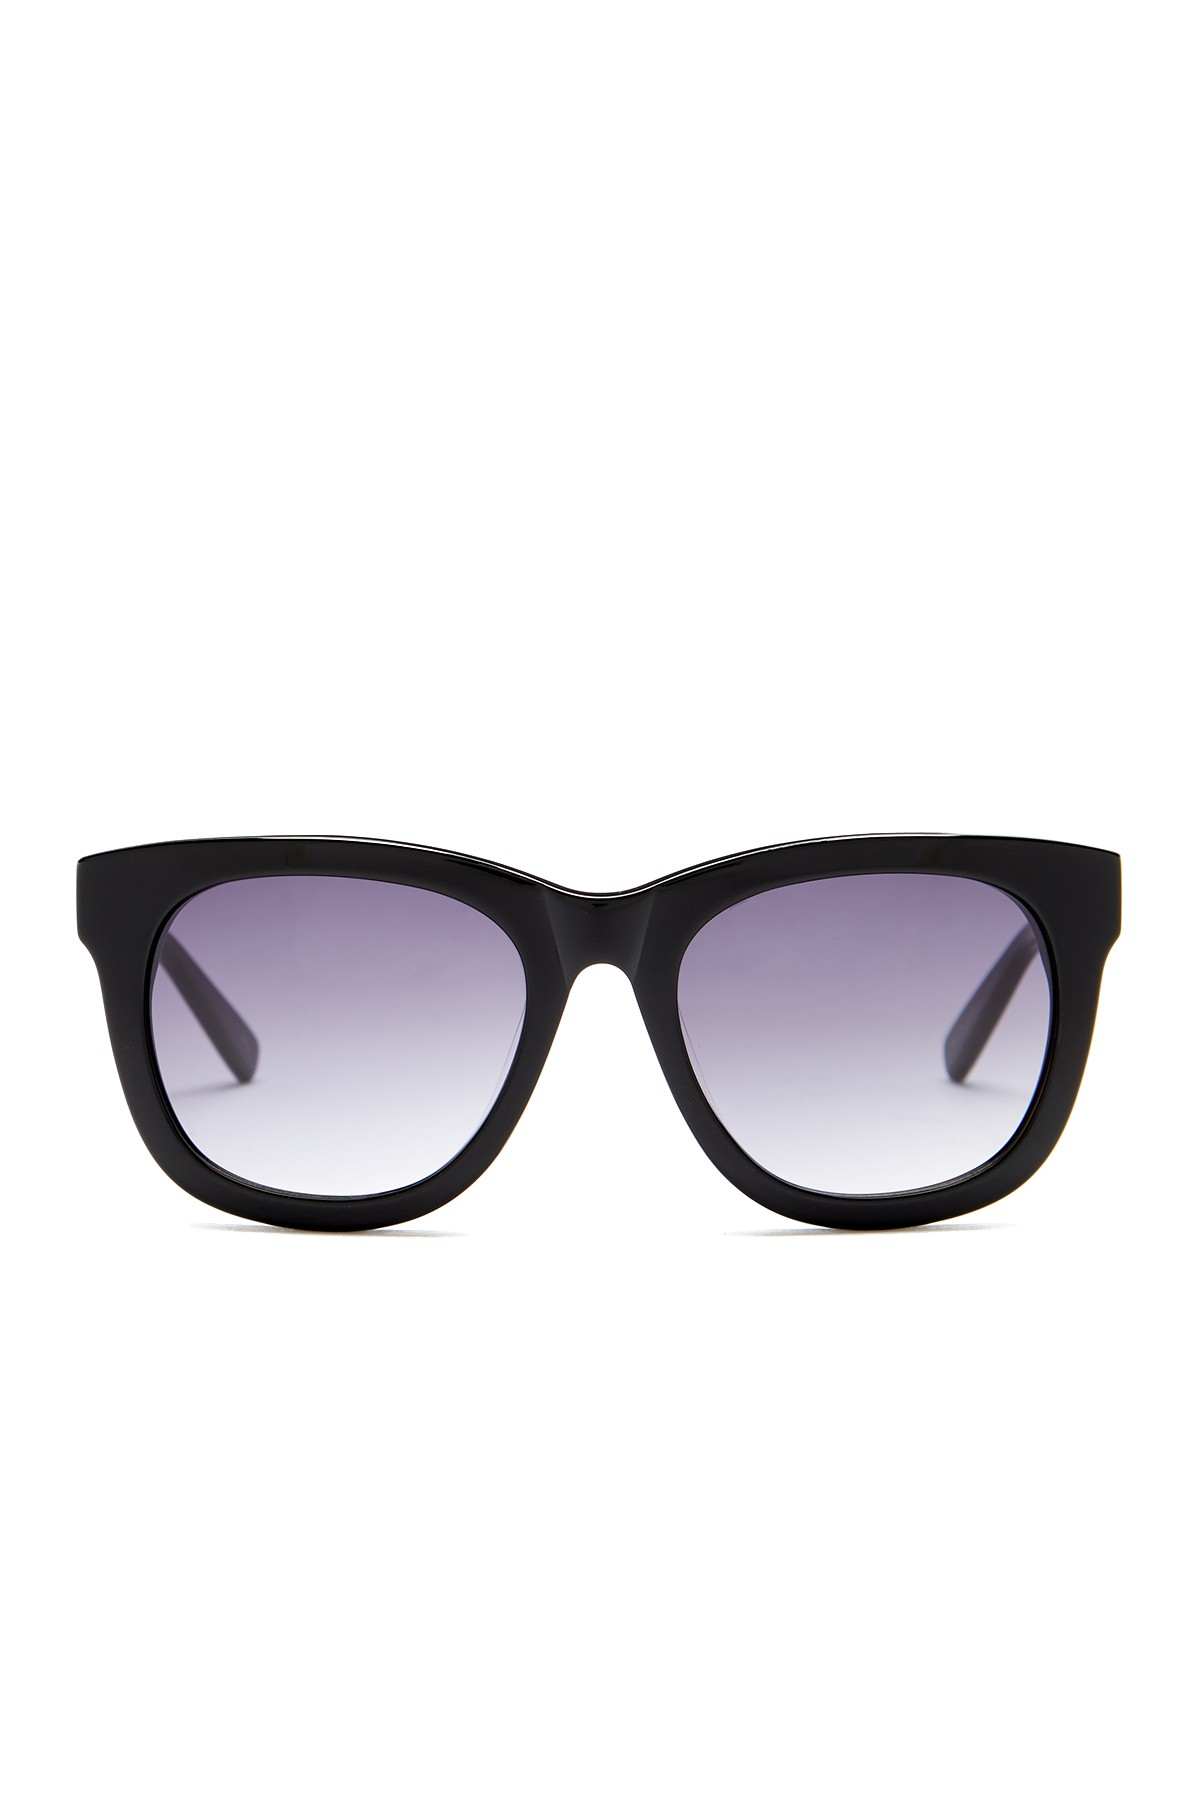 Unisex Bodrum Rectangular Sunglasses ($29.97). It's time to celebrate Momma.  Here is our Nordie's gift guide for items under $50! (Image: Nordstrom)